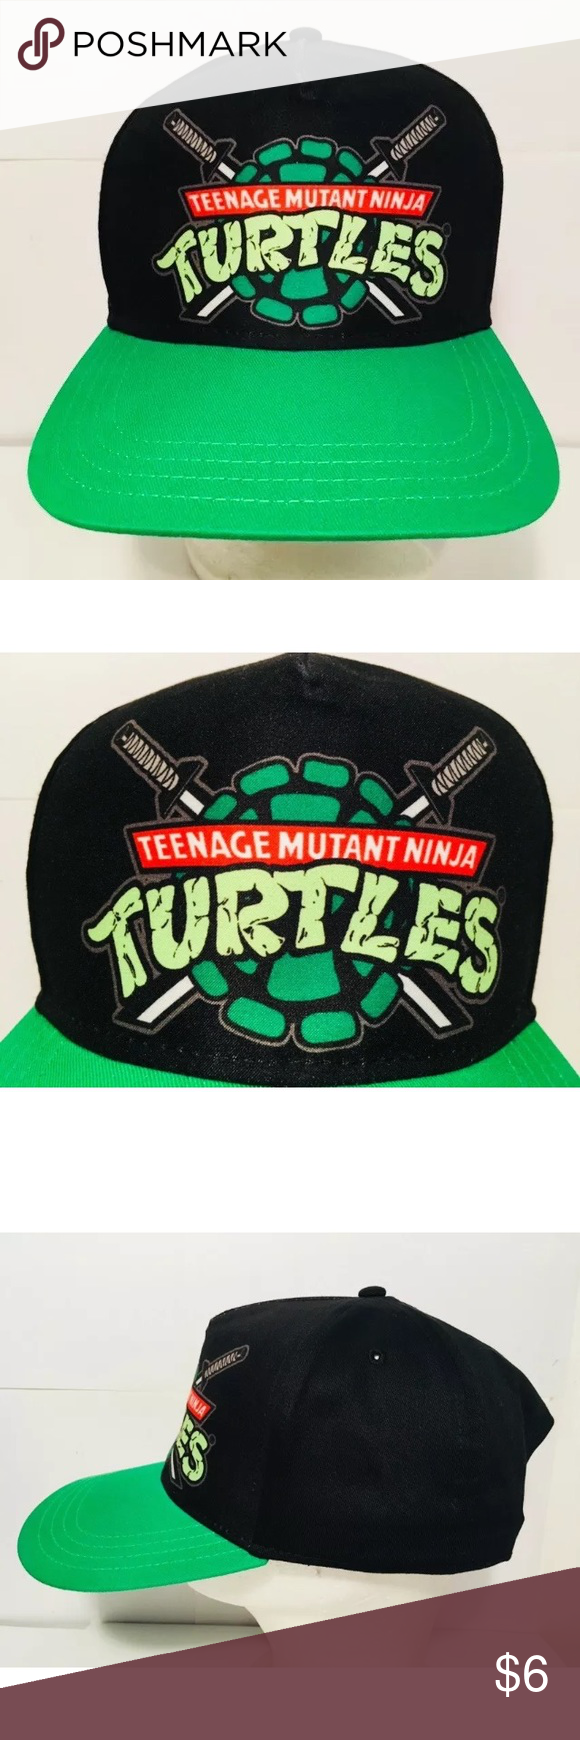 1464833e720 Teenage Mutant Ninja Turtles hat TMNT Youth Green • Excellent condition  Nickelodeon Ninja Turtles snapback hat. • Kids  size. • Made in 2016.